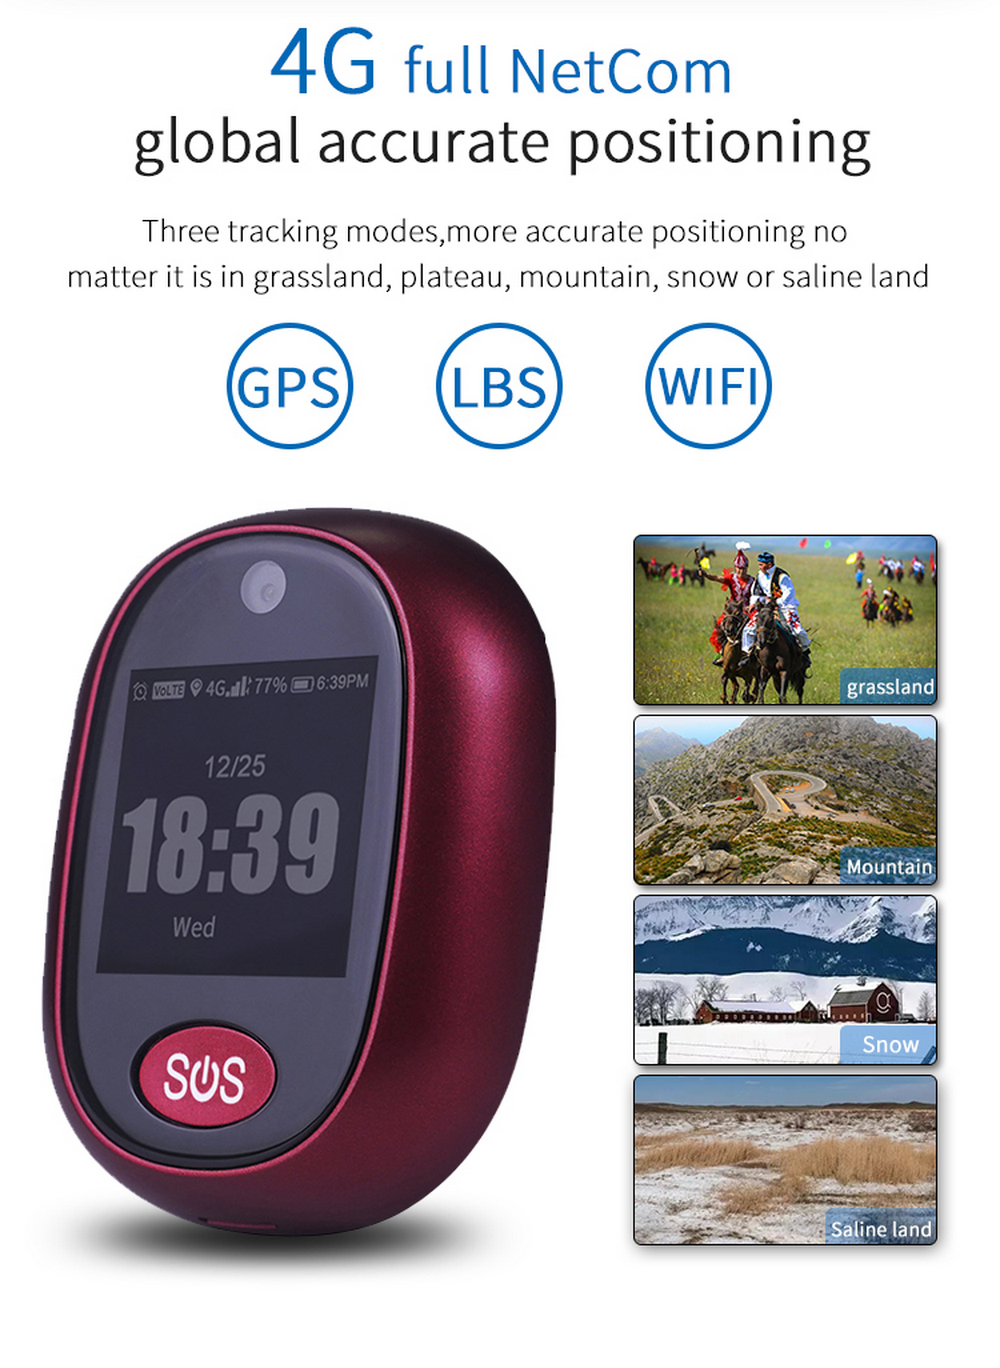 Enerna IoTech Loud Voice 4G GPS Tracker Senior Waterproof SOS Locator Alarm Mini Long Battery 4G GPS Tracking Device with Camera for Personal